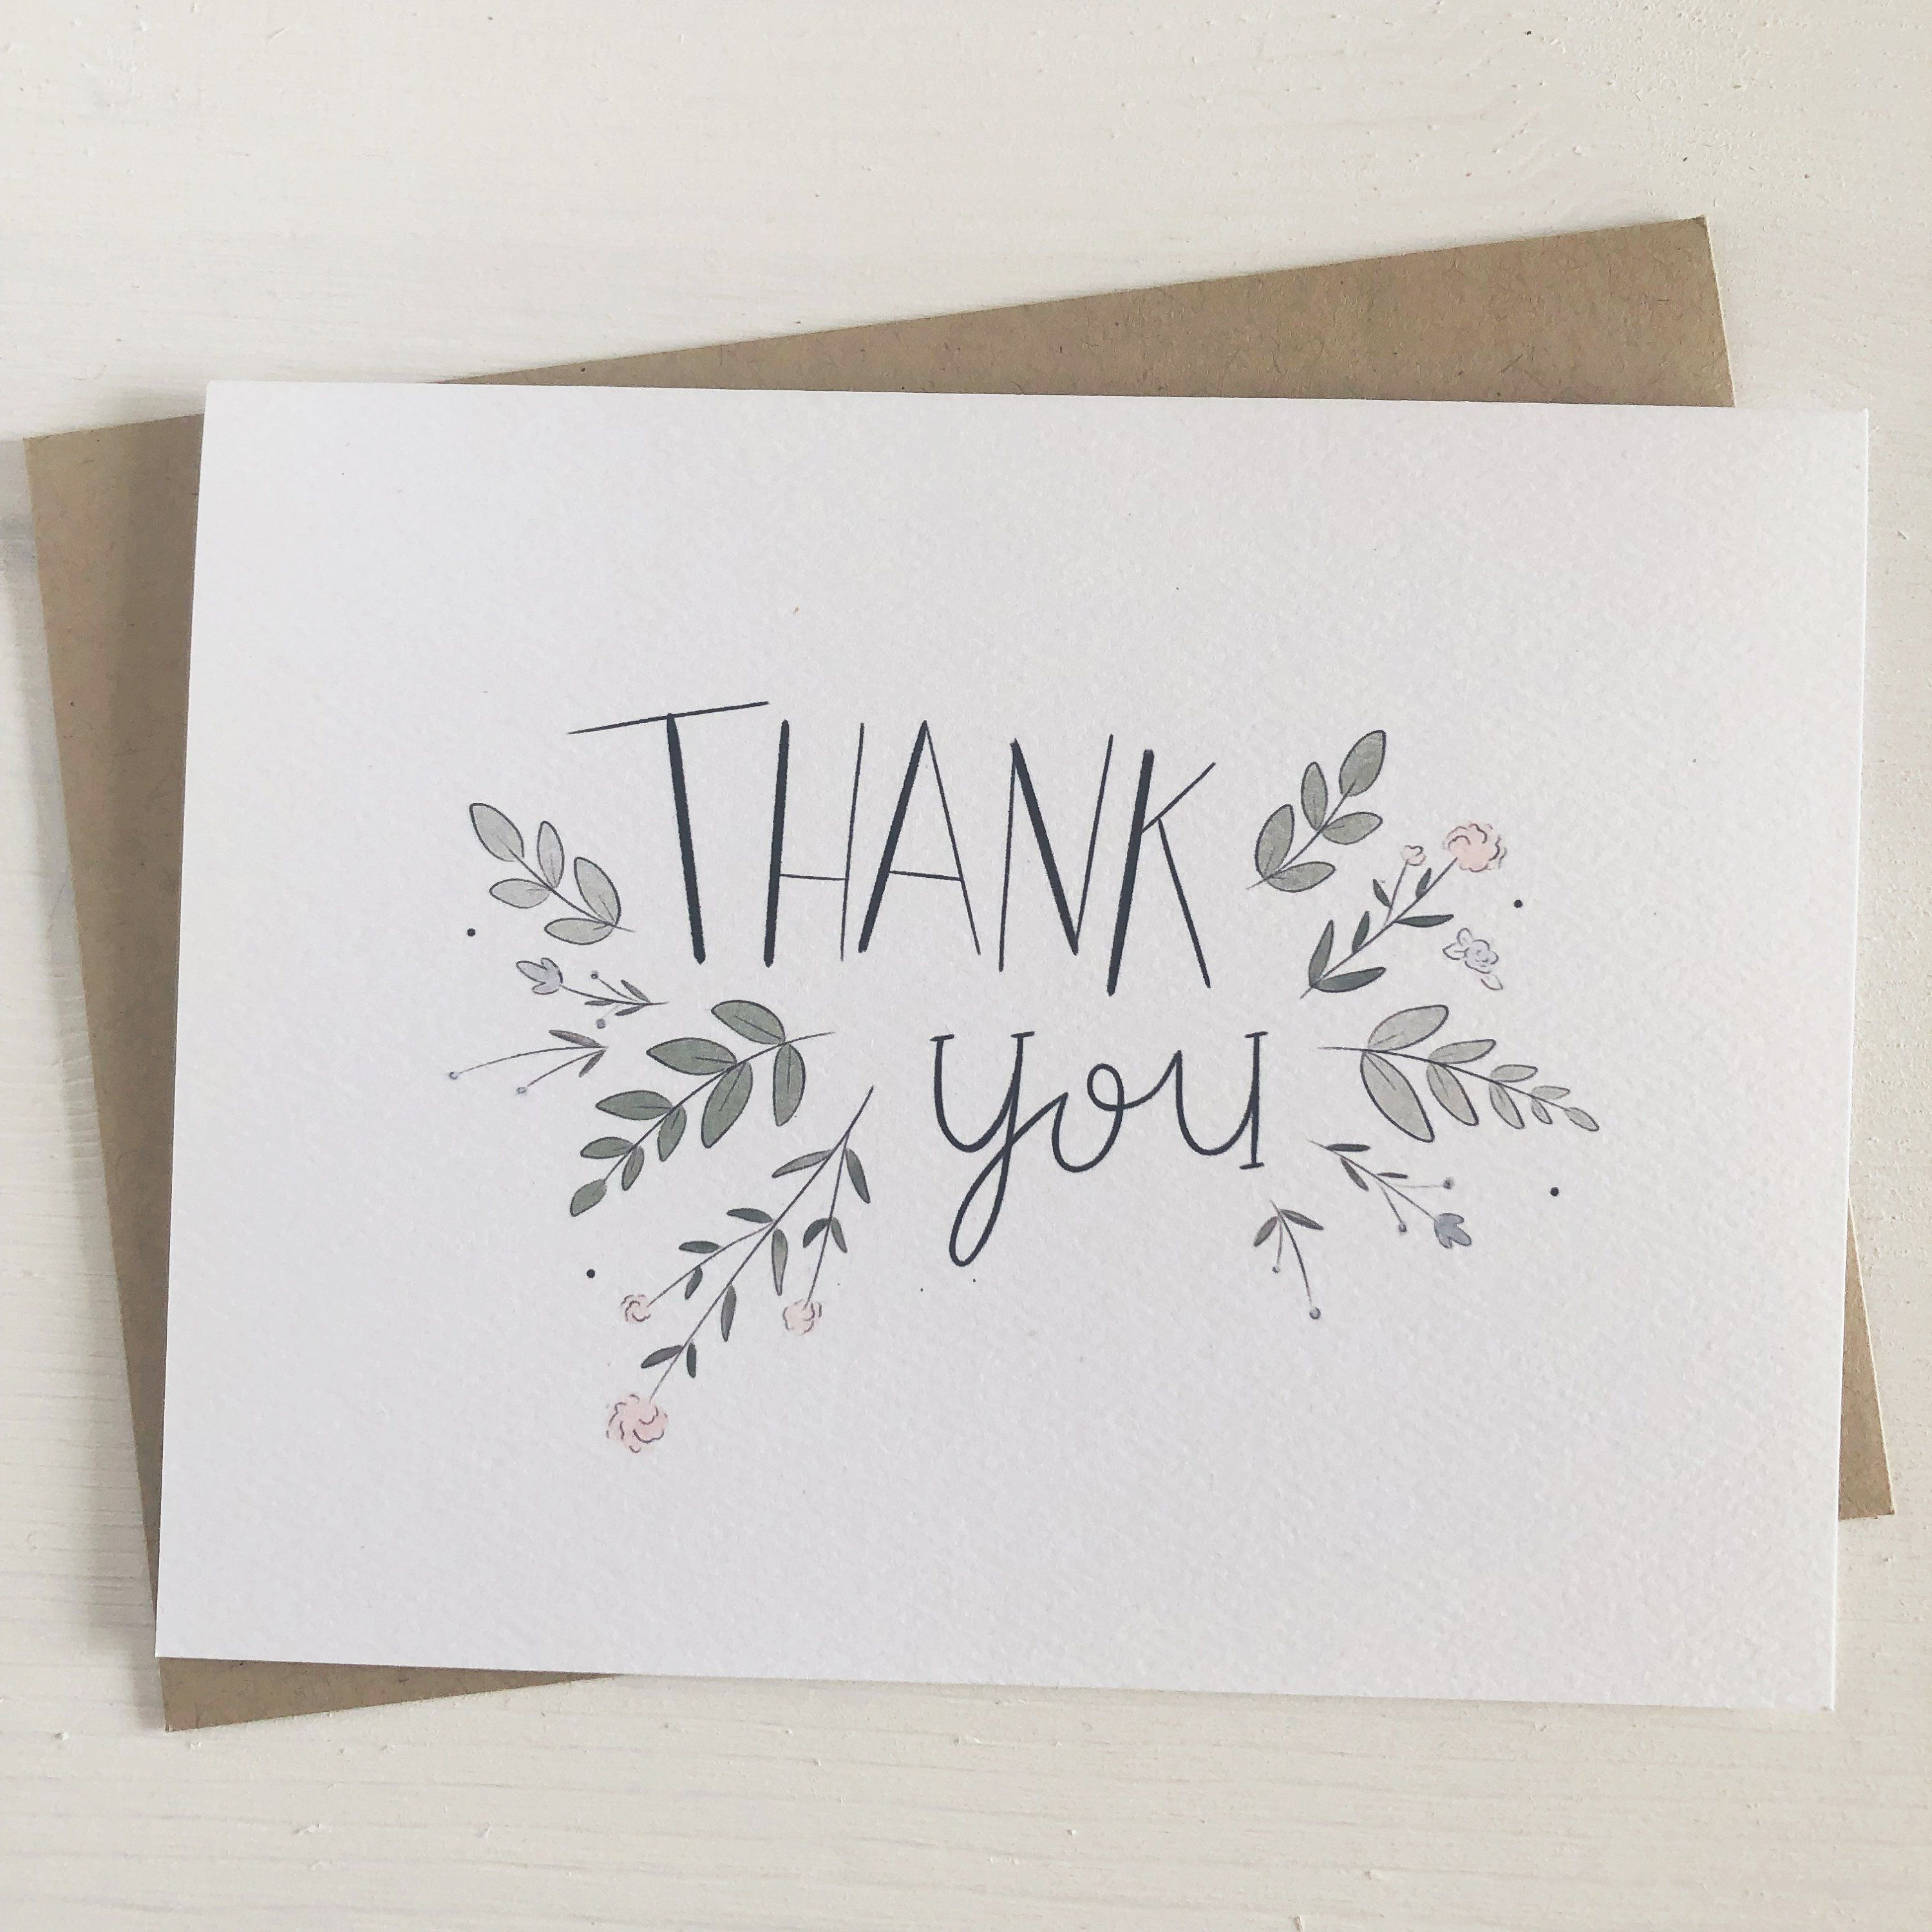 Floral Design Folded Card Thank You Cards 5.5 x 4 Envelopes Included